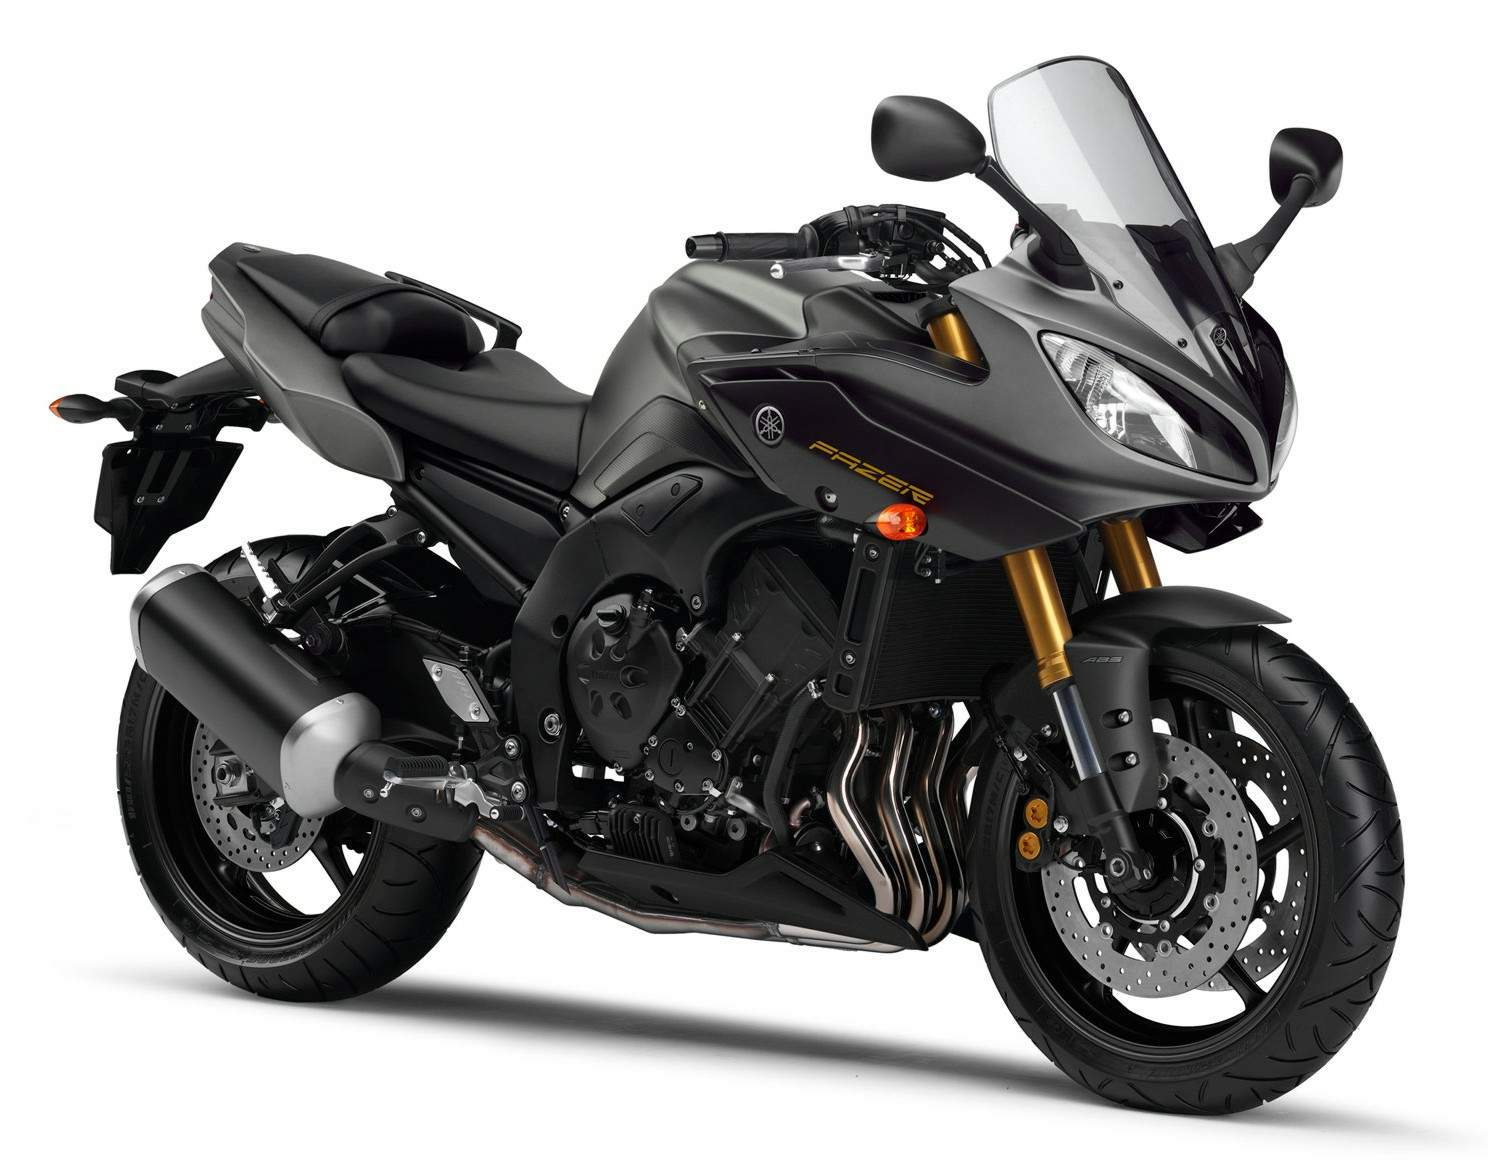 Yamaha FAZER Motorcycle Specification